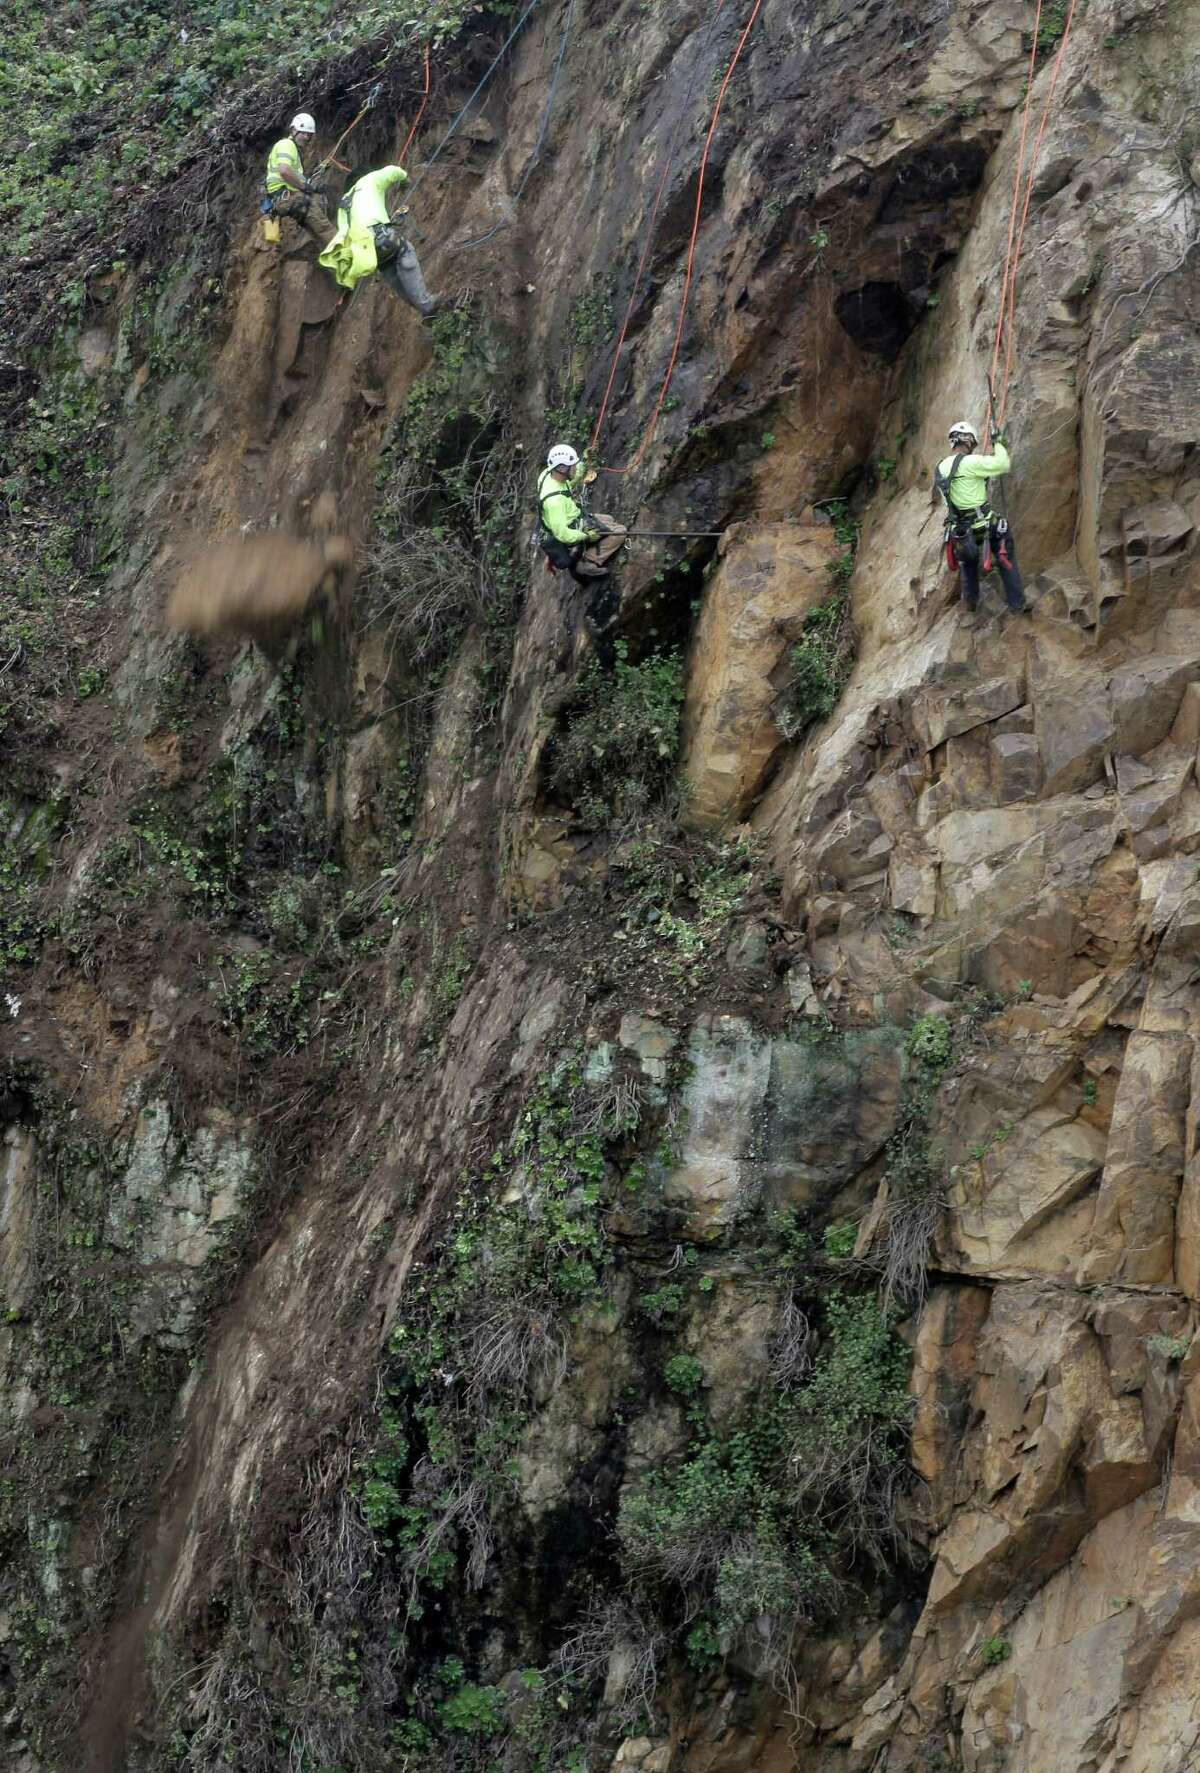 Rock remediation technicians (l to r) Jamie Steele, Adrian Coronado, John Brown and Feliciano Ramos begin the work of removing loose rock and vegetation, as the San Francisco Public Works department begins a six-month project to stabilize the crumbling cliff below Coit Tower in San Francisco, Calif. as seen on Tuesday Dec. 9, 2014.